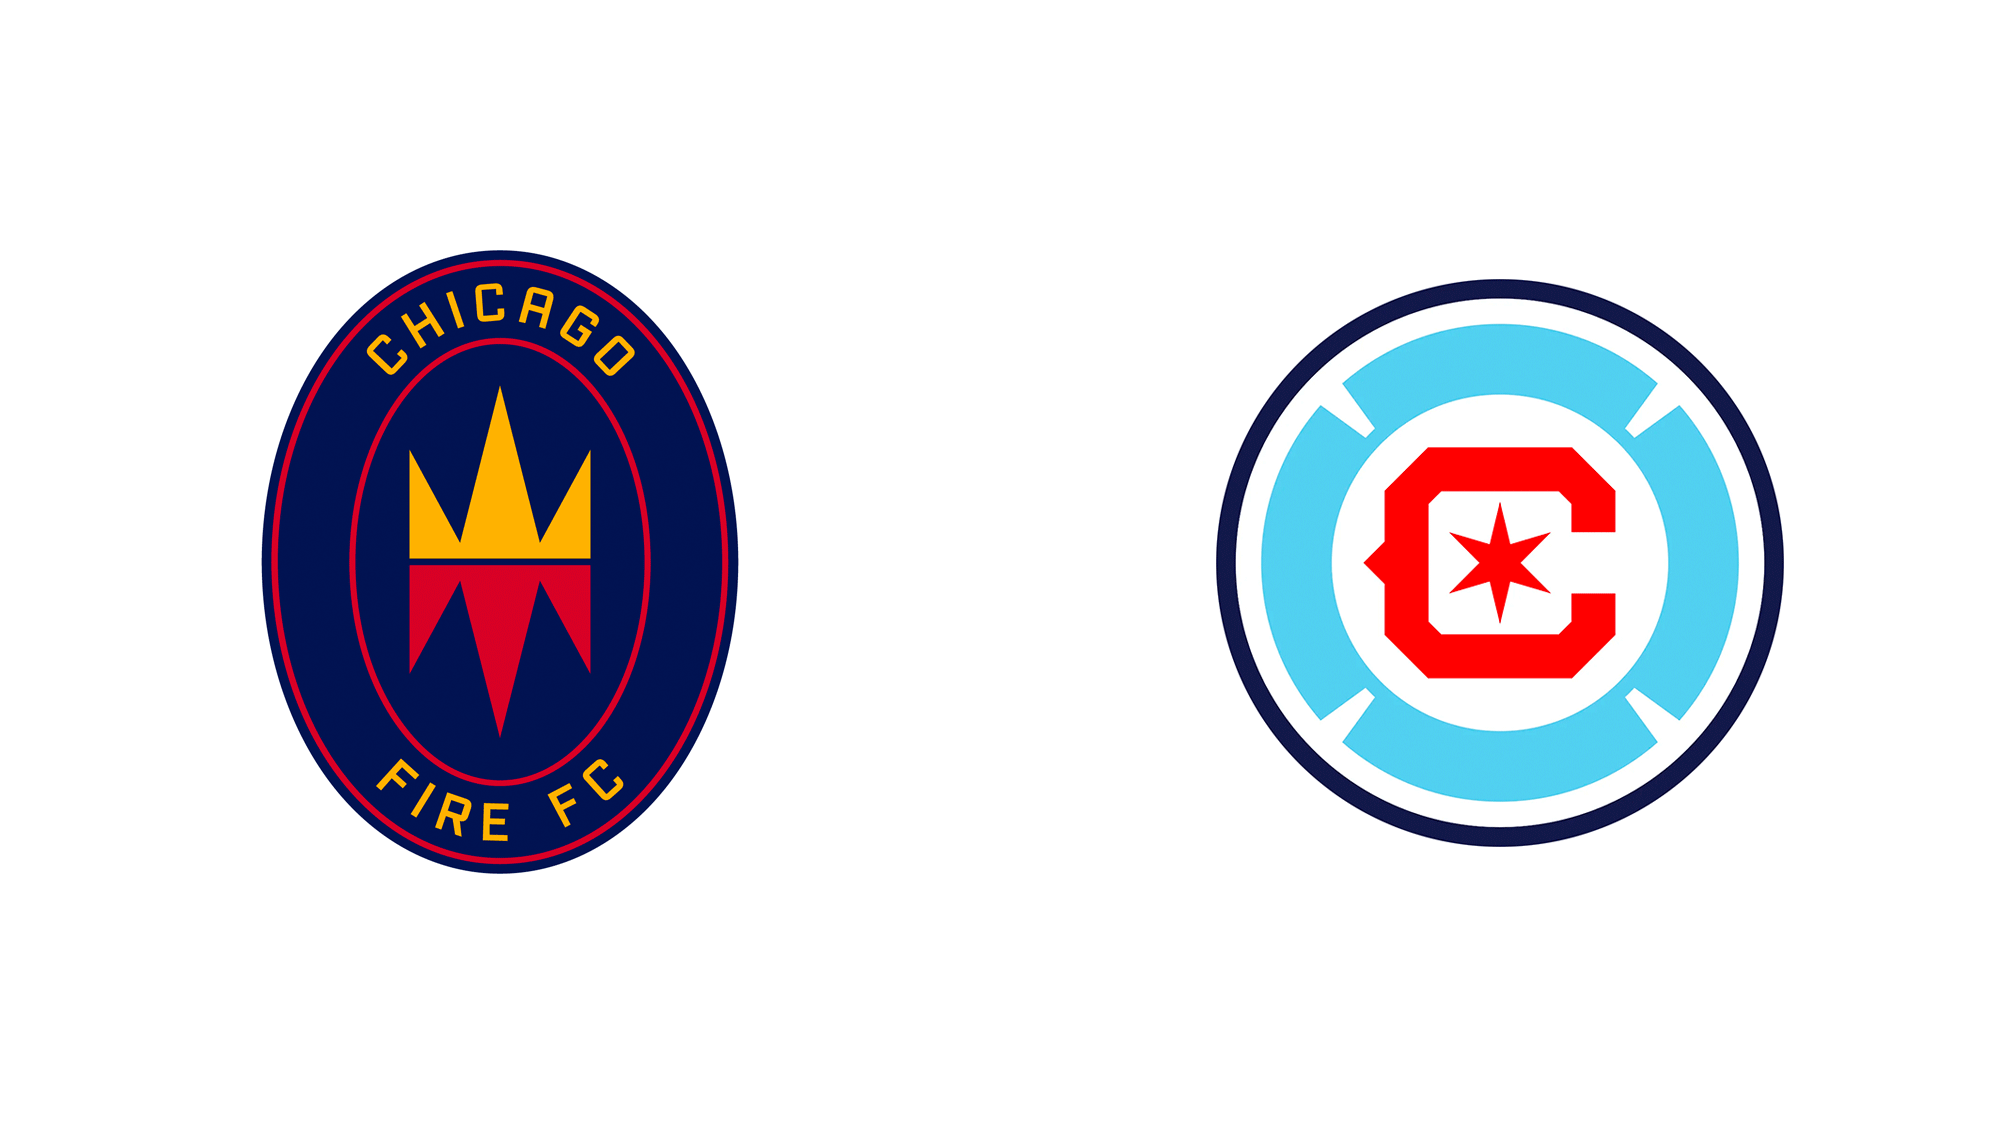 brand new new logos for chicago fc by matthew wolff